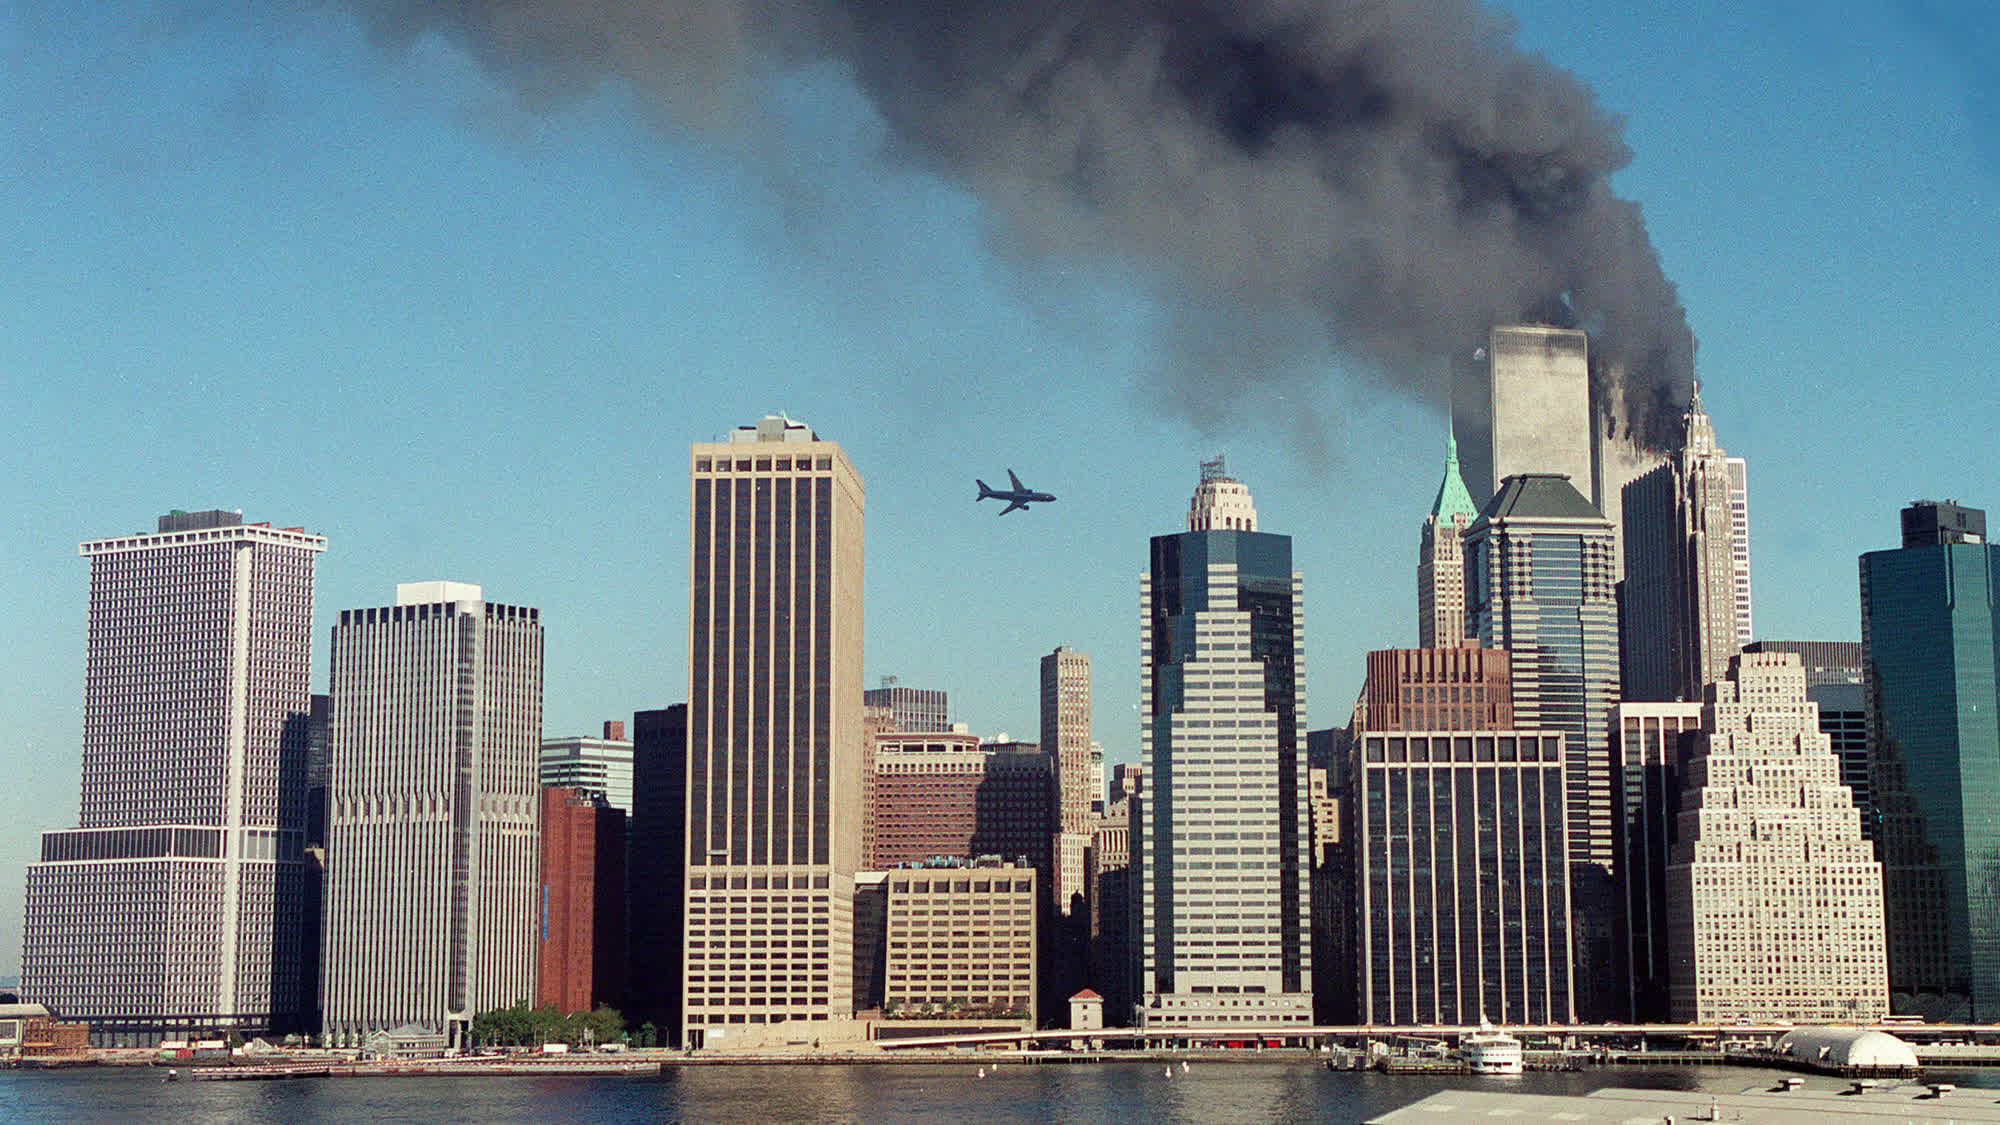 Defining photos the world will never forget as US marks 20th Anniversary of 9/11 terrorist attacks